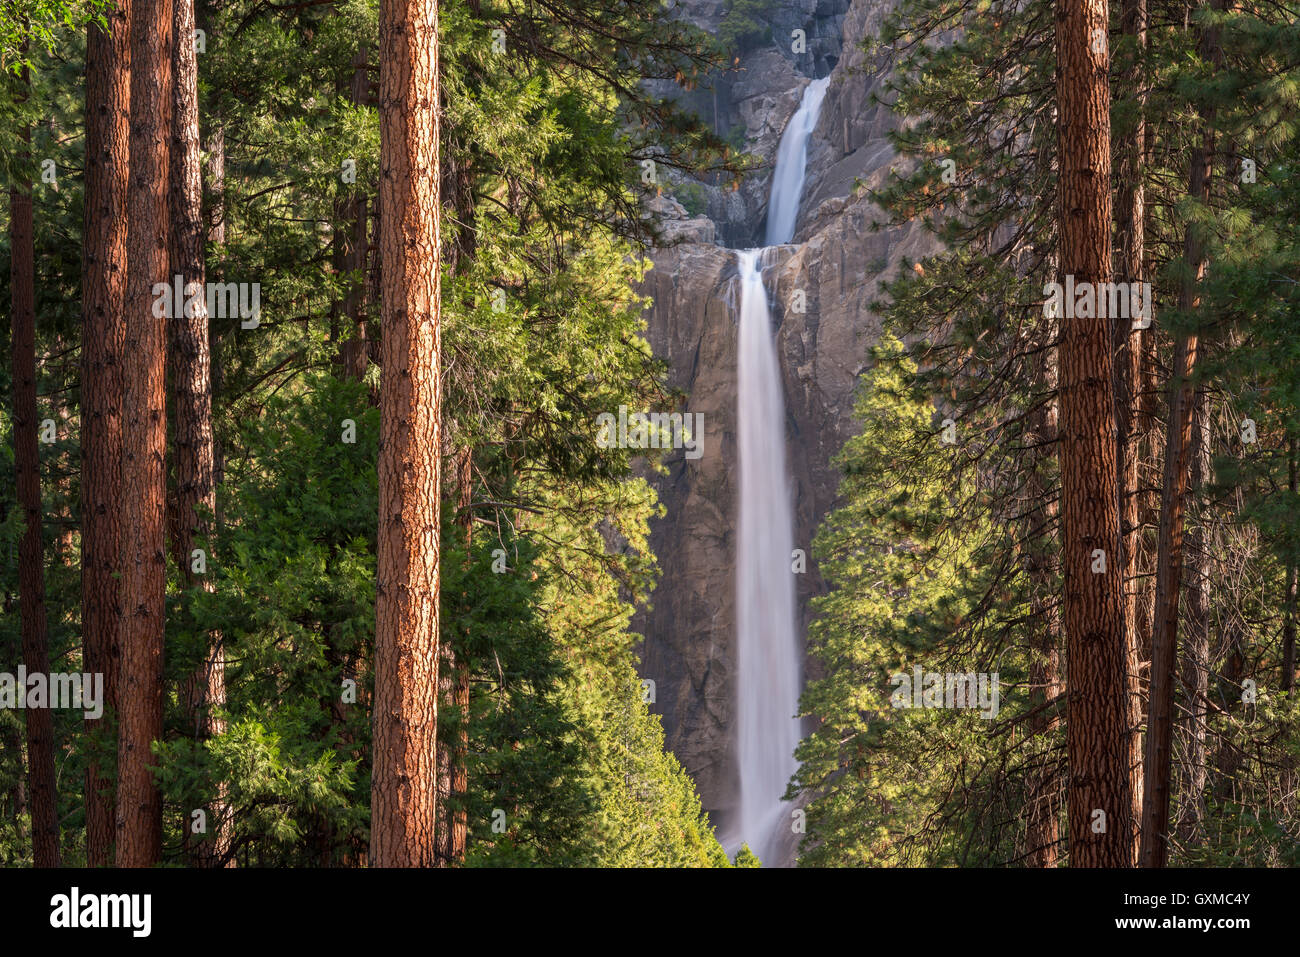 Lower Yosemite Falls through the conifer trees of Yosemite Valley, California, USA. Spring (June) 2015. - Stock Image